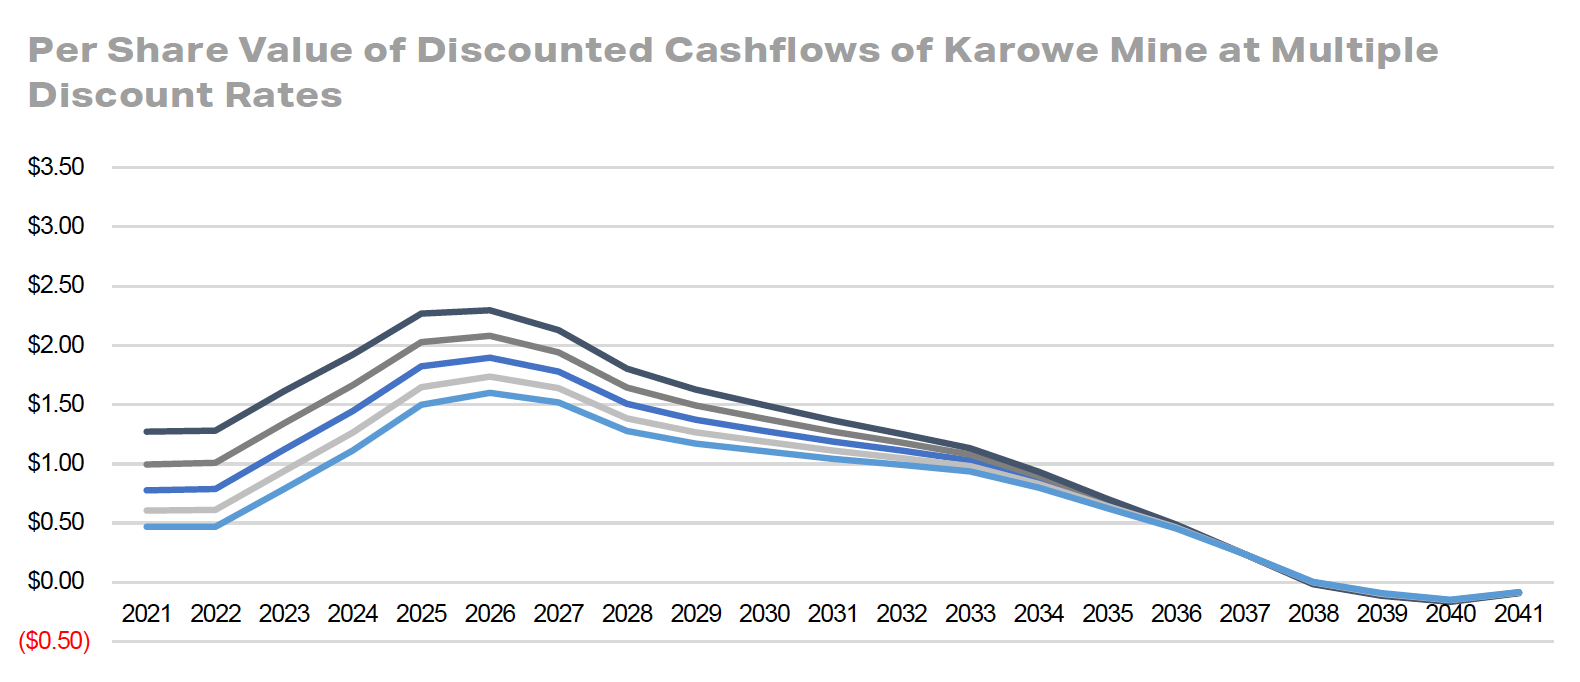 Per Share Value of Discounted Cashflows of Karowe Mine at Multiple Discount Rates